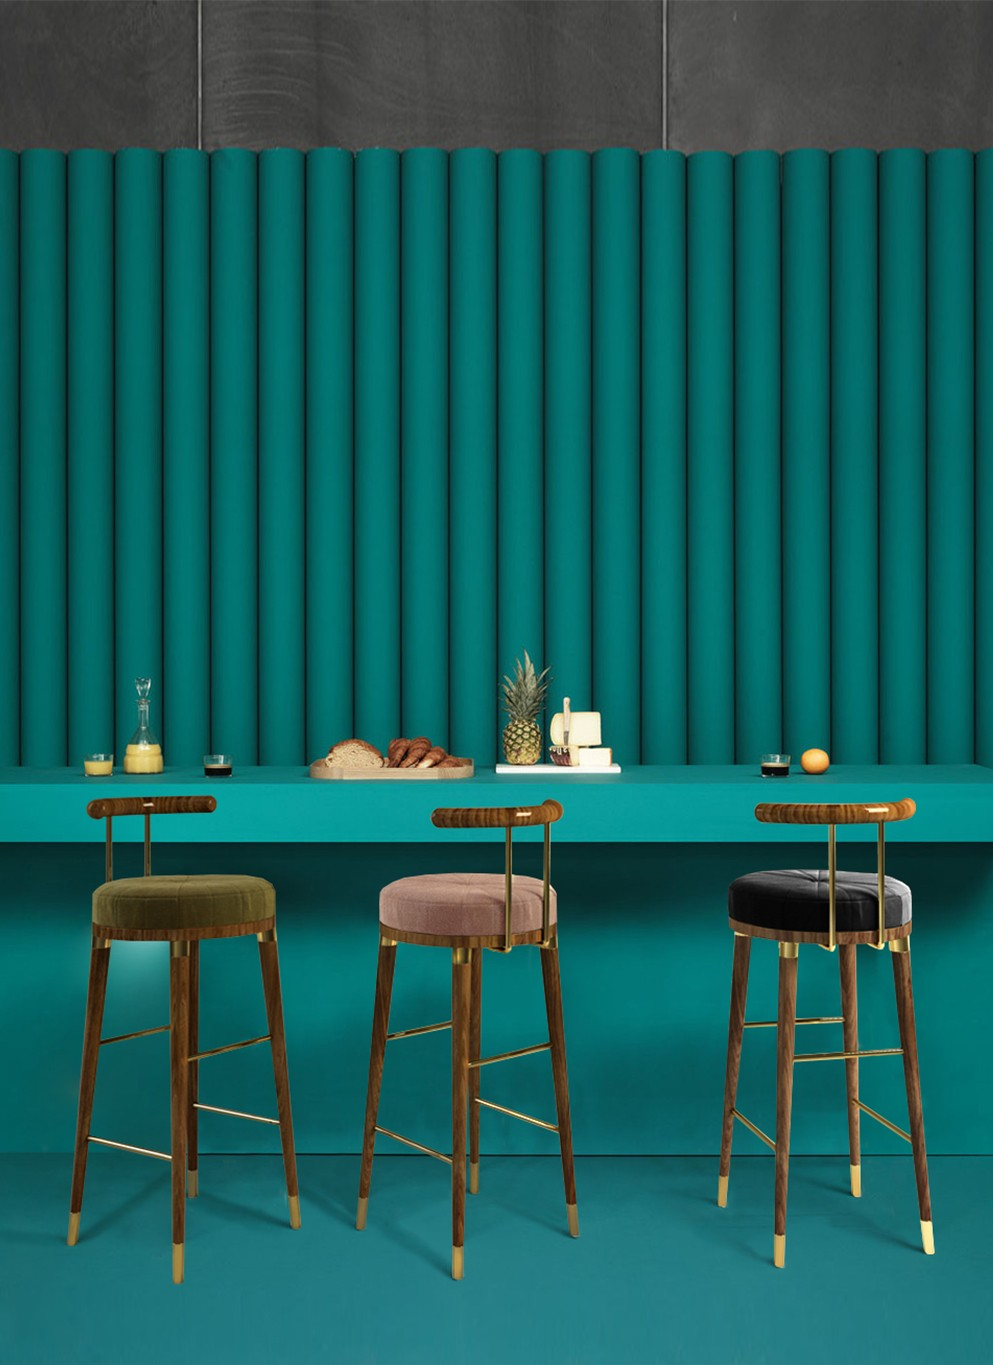 20 Counter Stools To Help You Create Your Dream Kitchen counter stools 20 Counter Stools To Help You Create Your Dream Kitchen Mailu bar stool inspiration 01 lifestyle